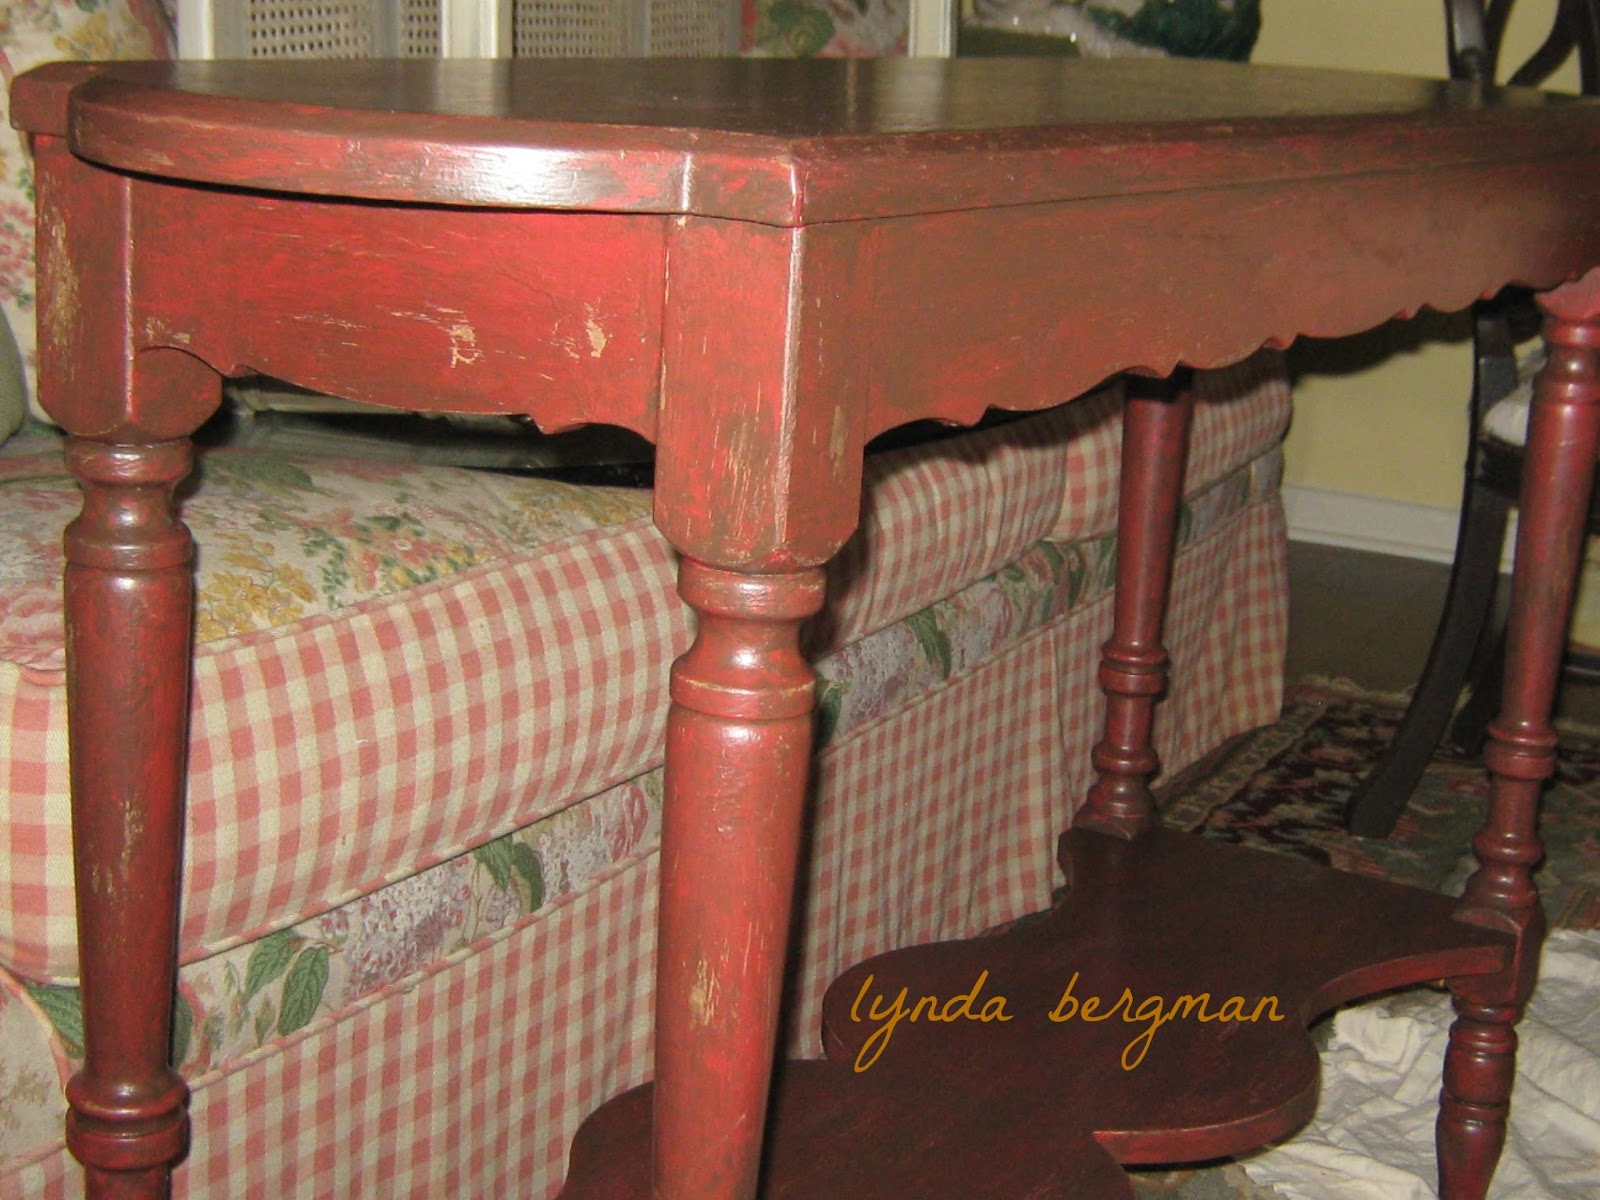 Lynda bergman decorative artisan painting red distressing a painting red distressing a small sofa table geotapseo Image collections